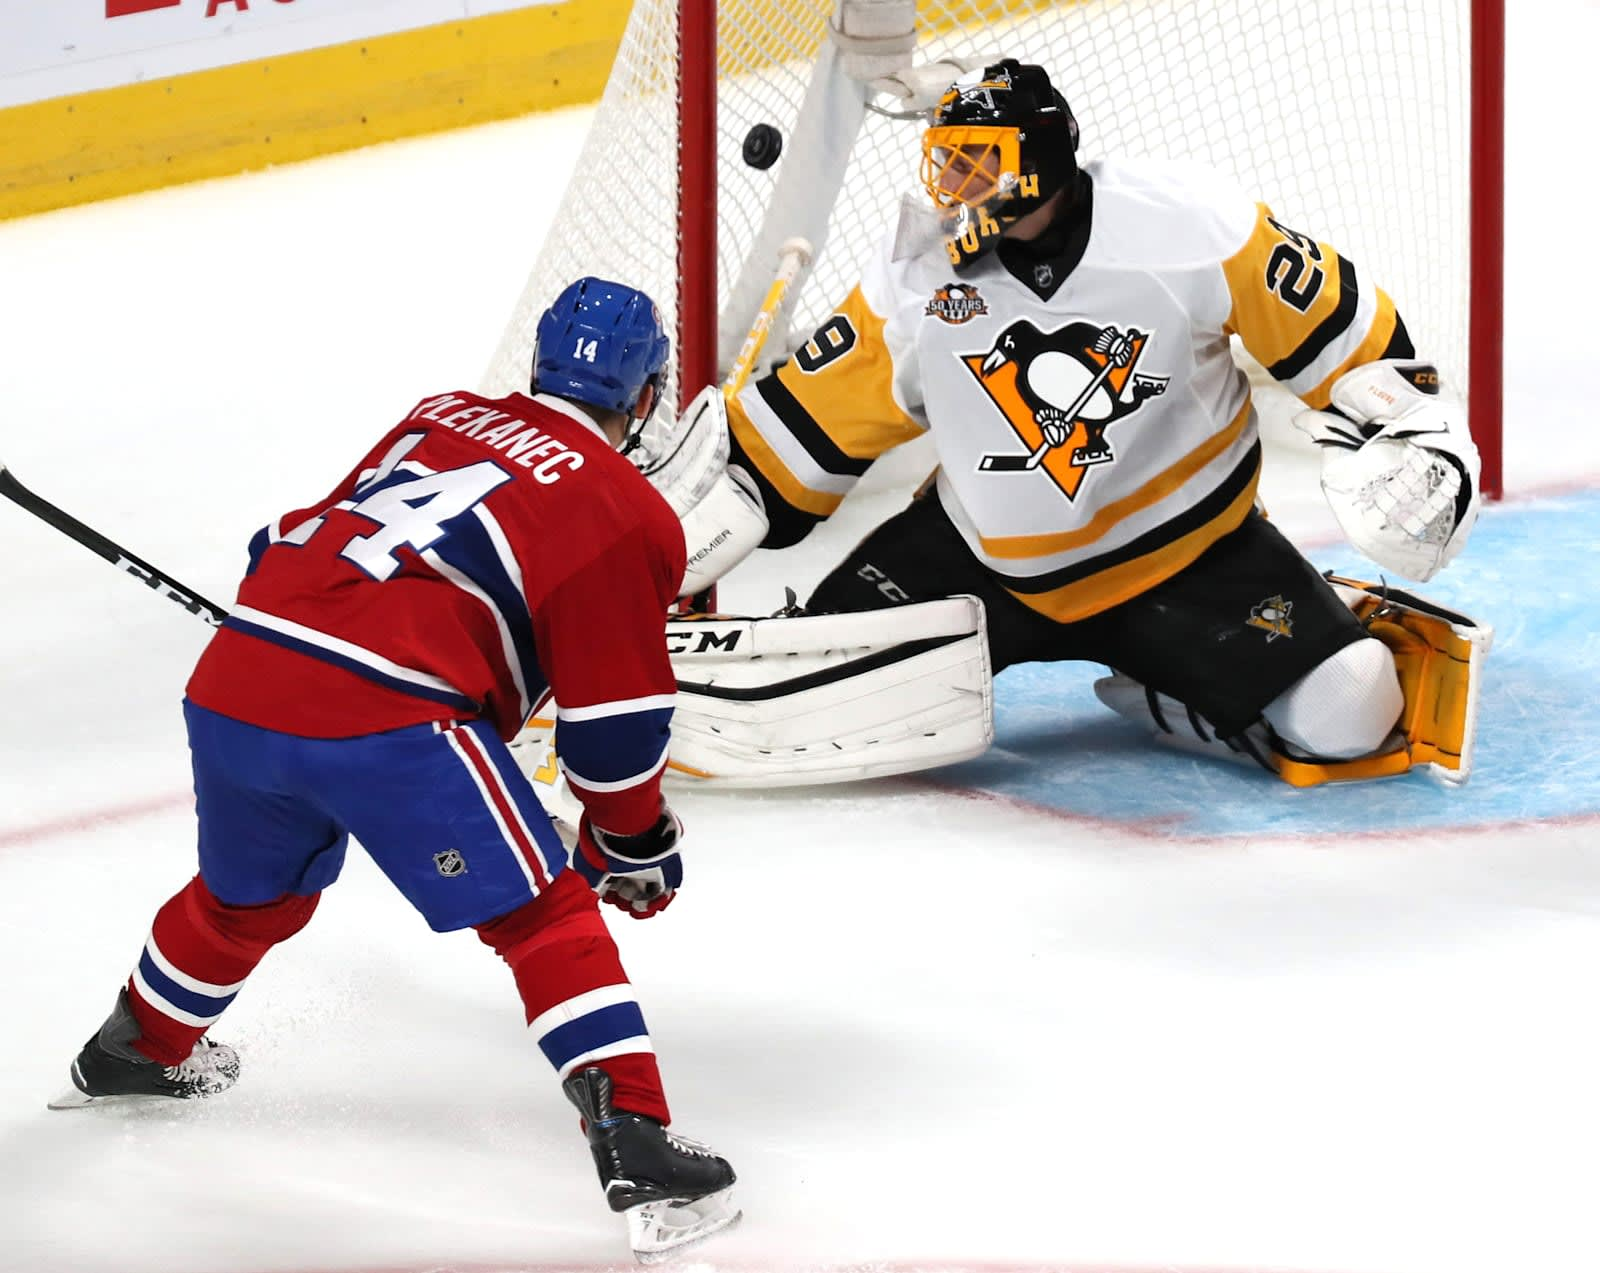 Sling Tv Adds Nhl Network To Its Add On Sports Extra Package